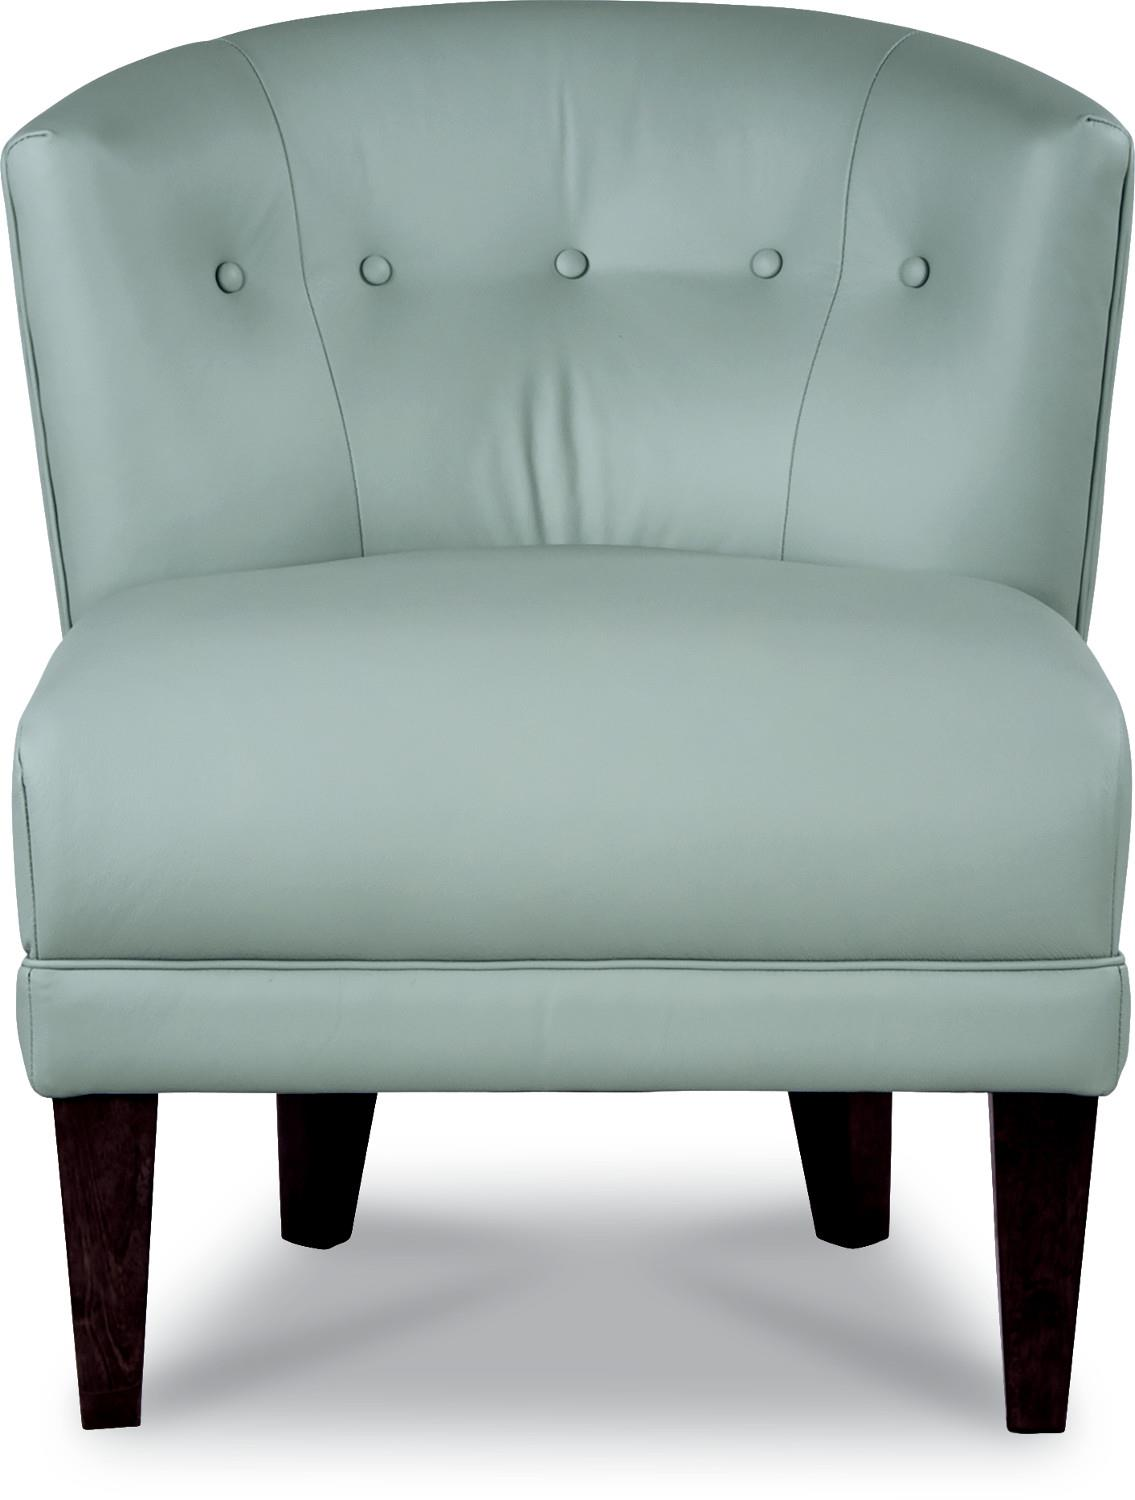 100 teal accent chair chair accent chairs turquoise show ho